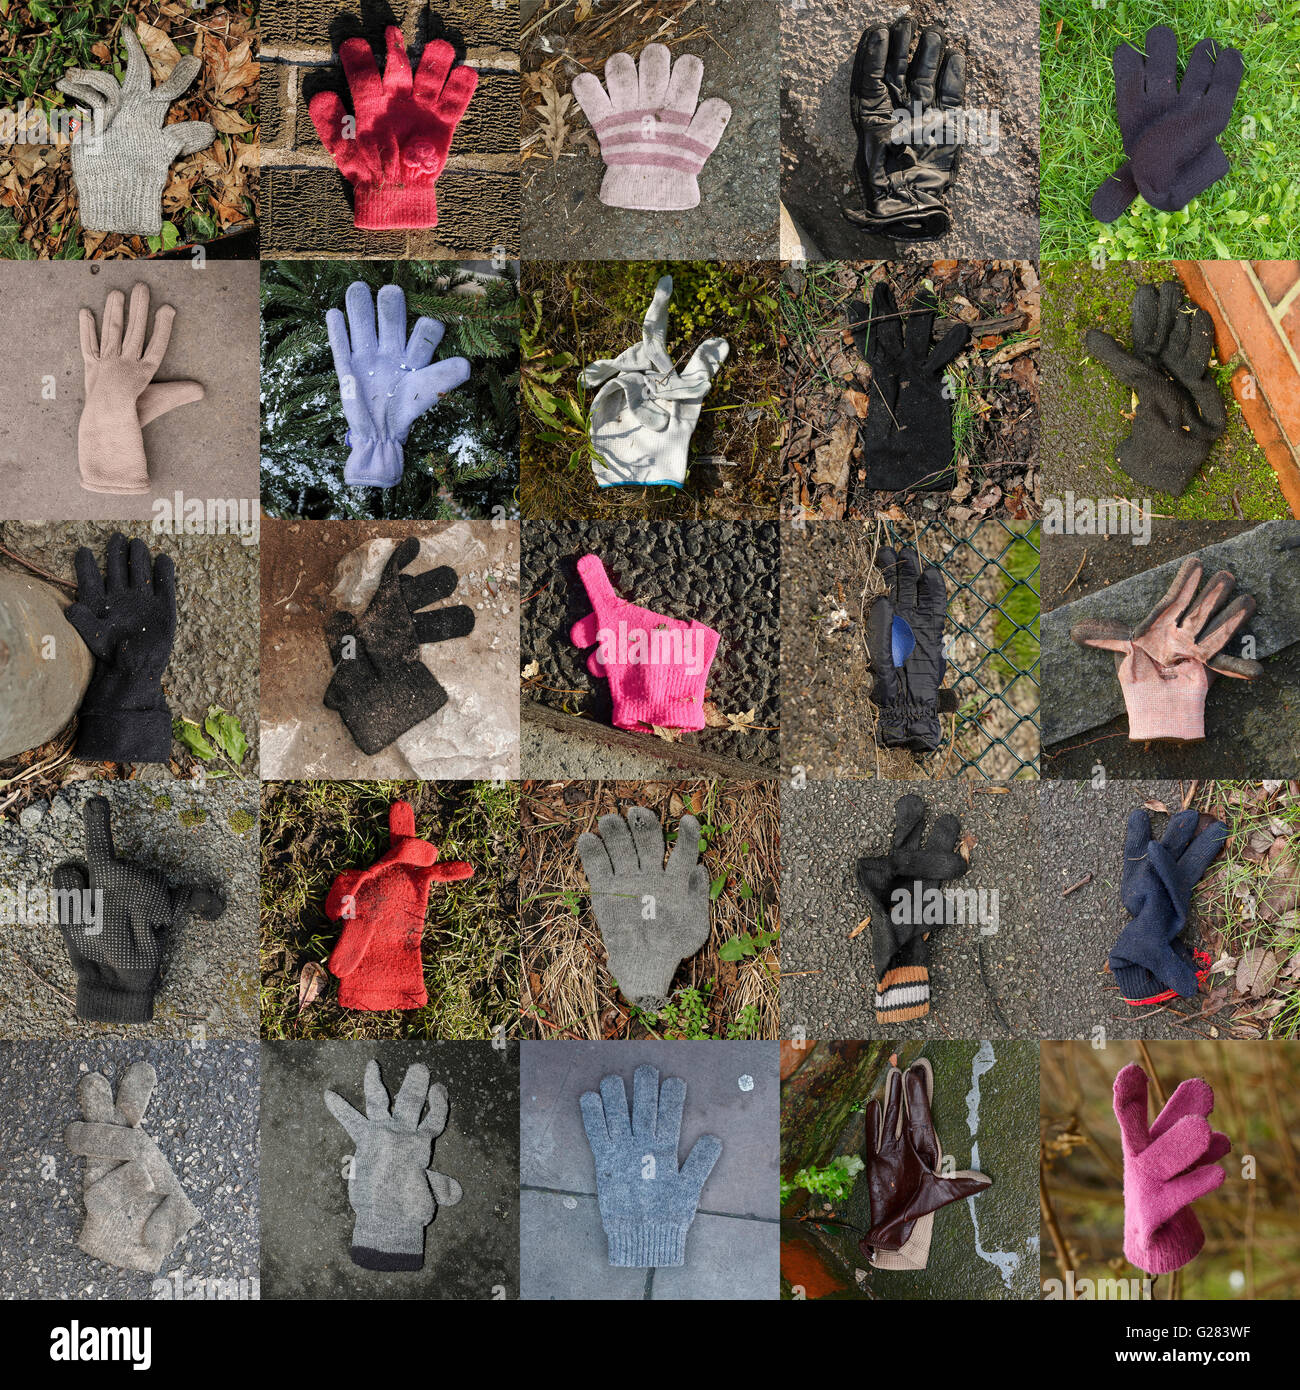 Collection of 25 lost and found gloves - Stock Image